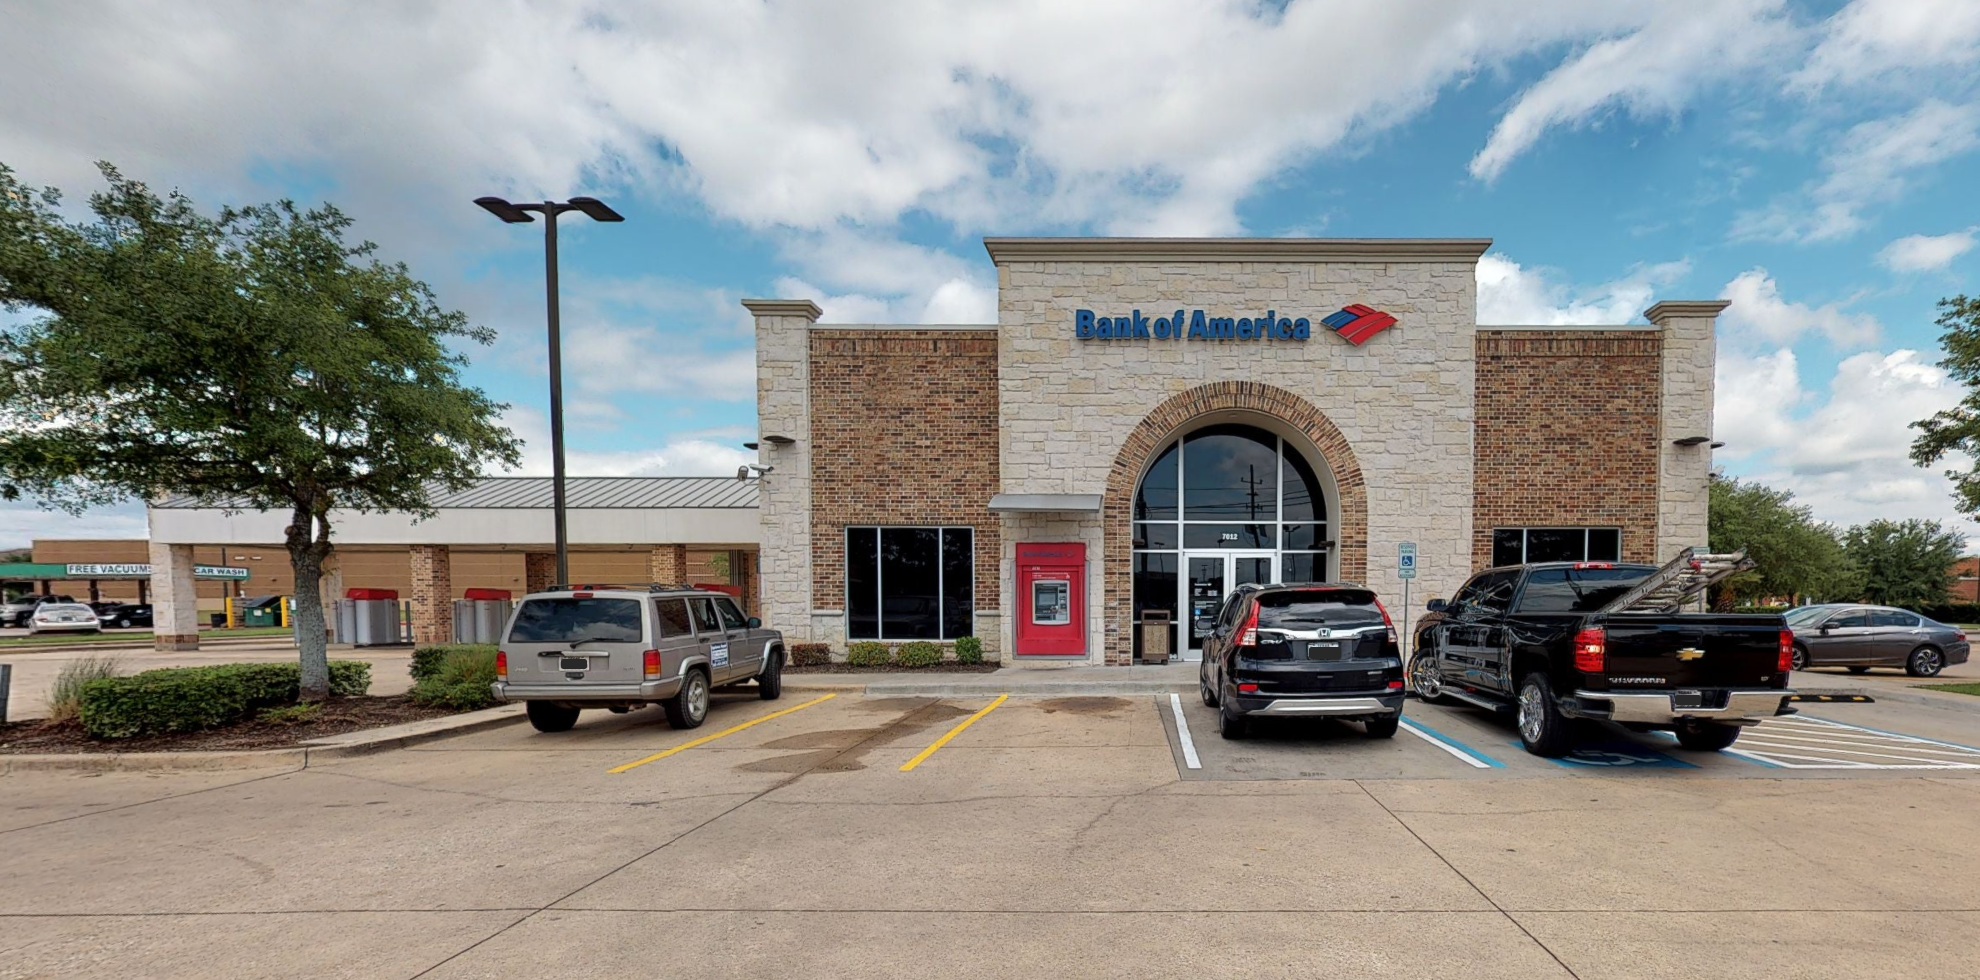 Bank of America financial center with drive-thru ATM   7012 Barker Cypress Rd, Cypress, TX 77433